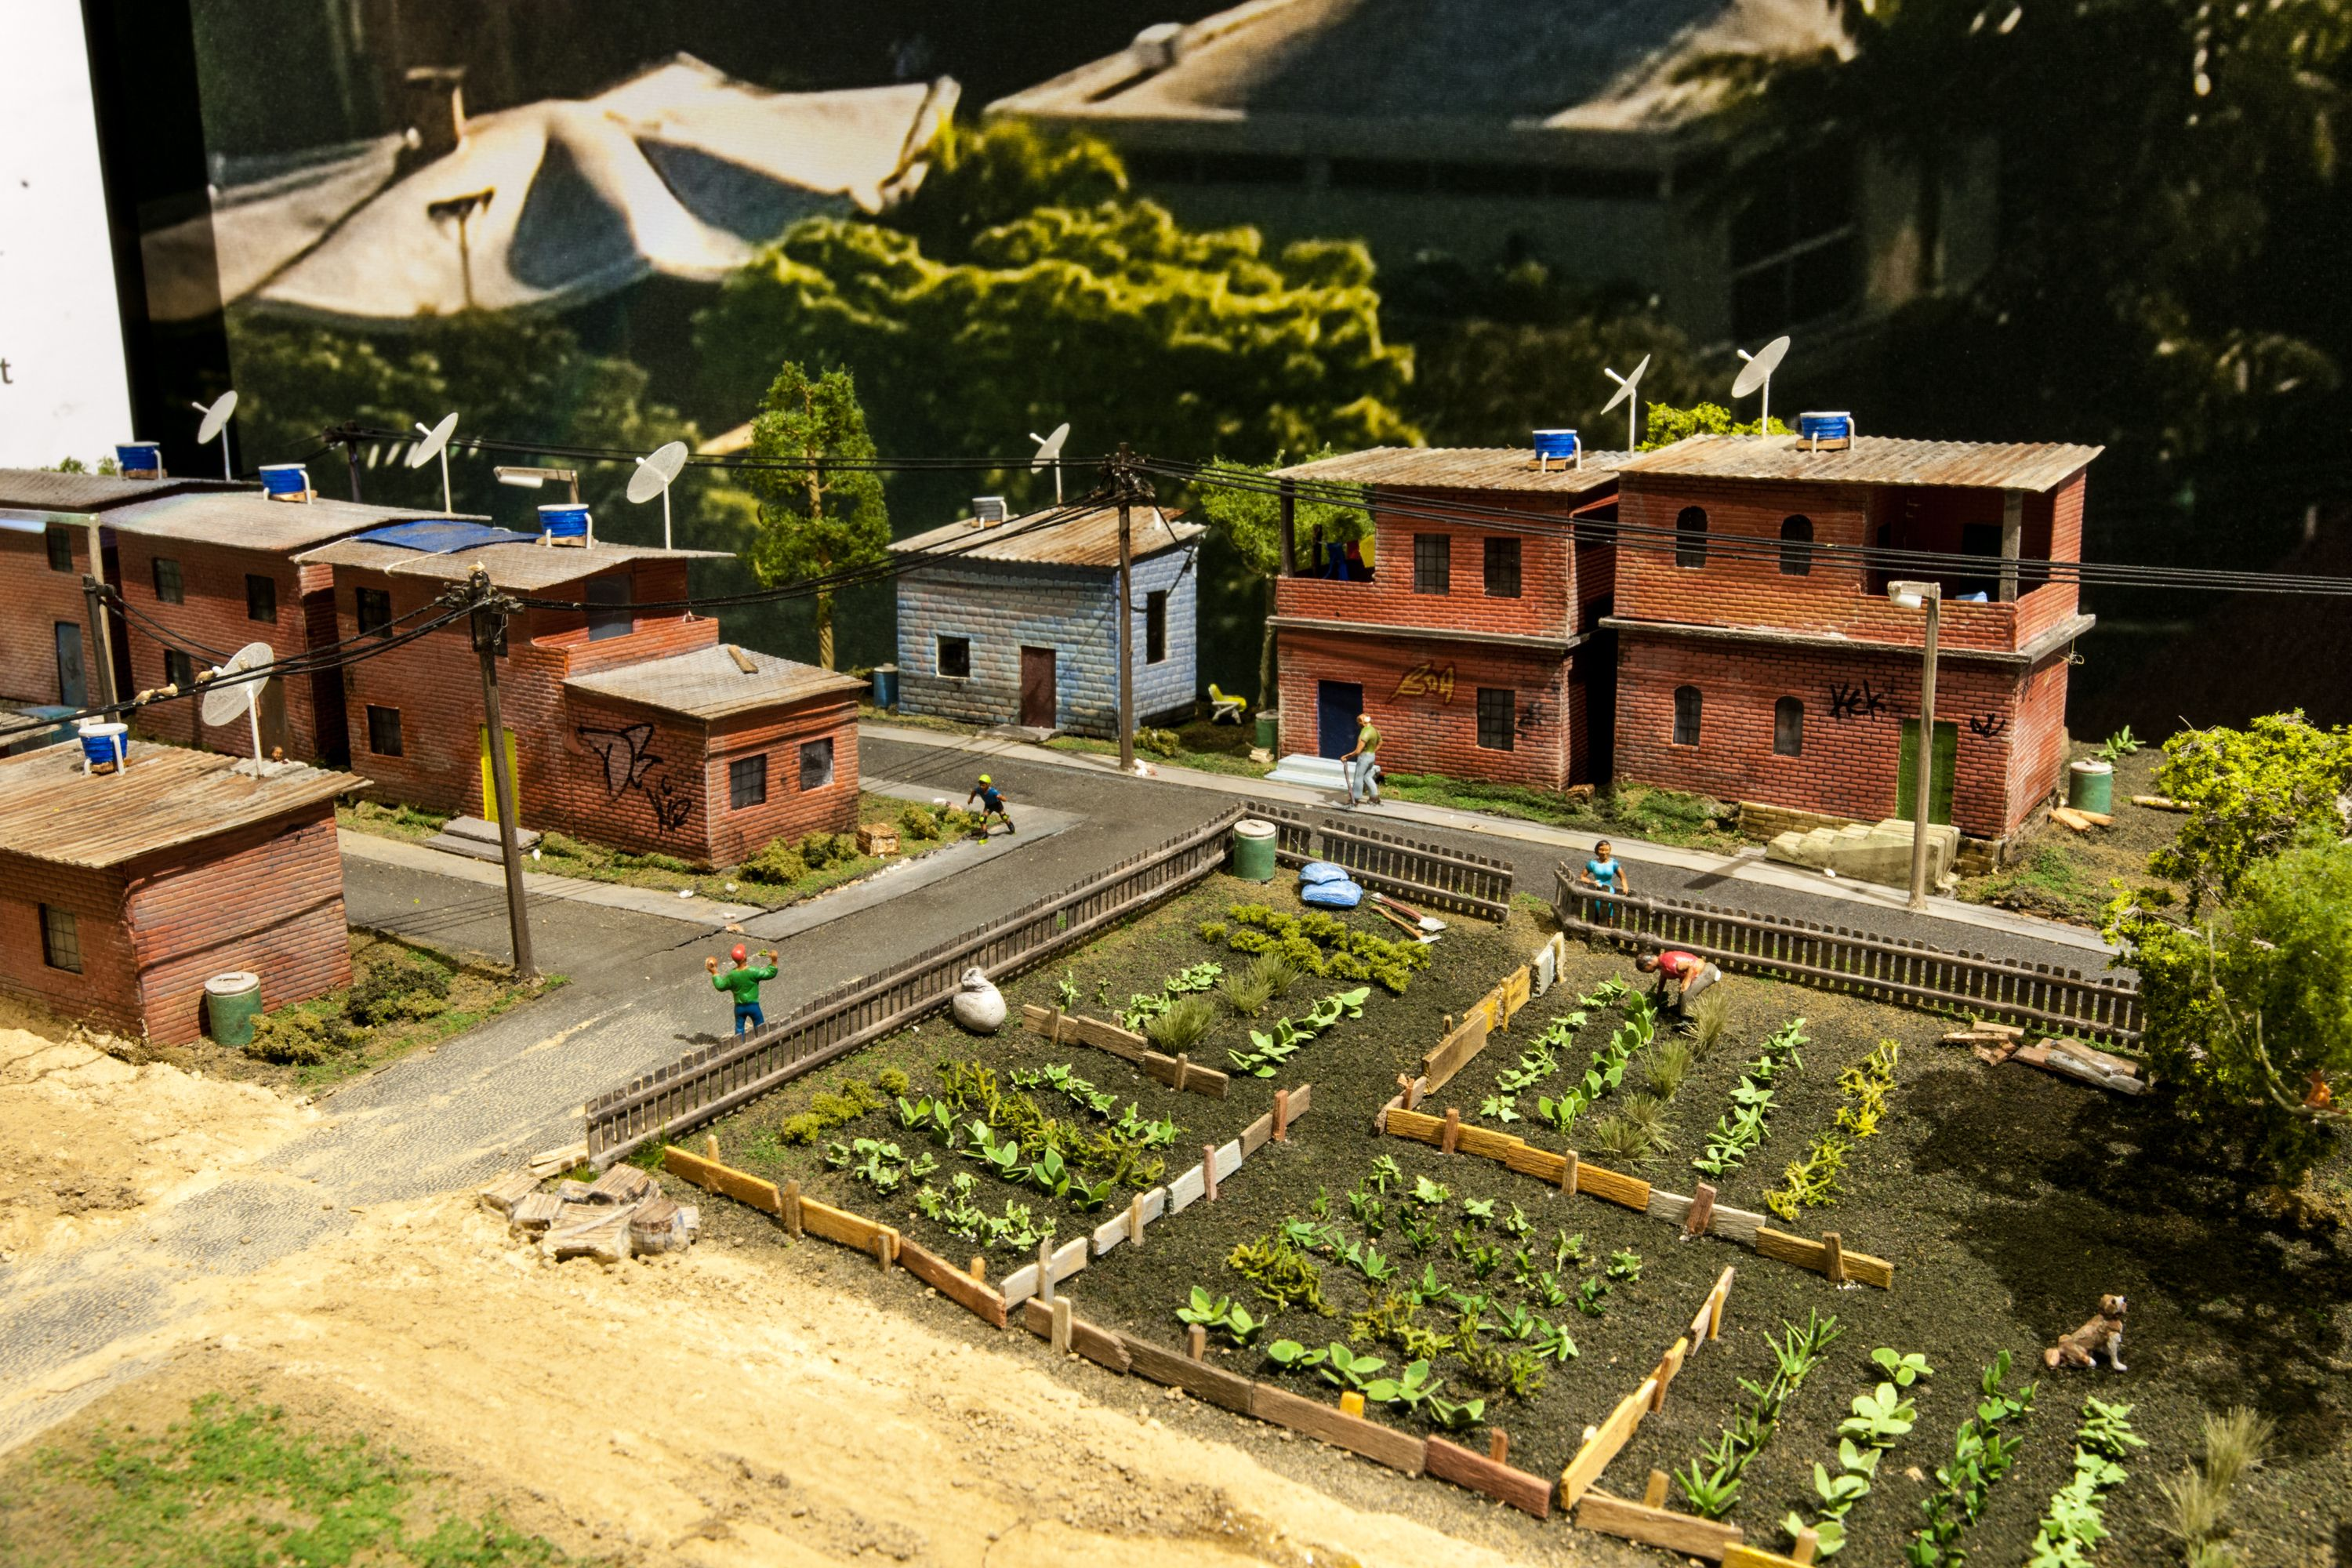 This diorama shows a neighborhood on the outskirts of Belo